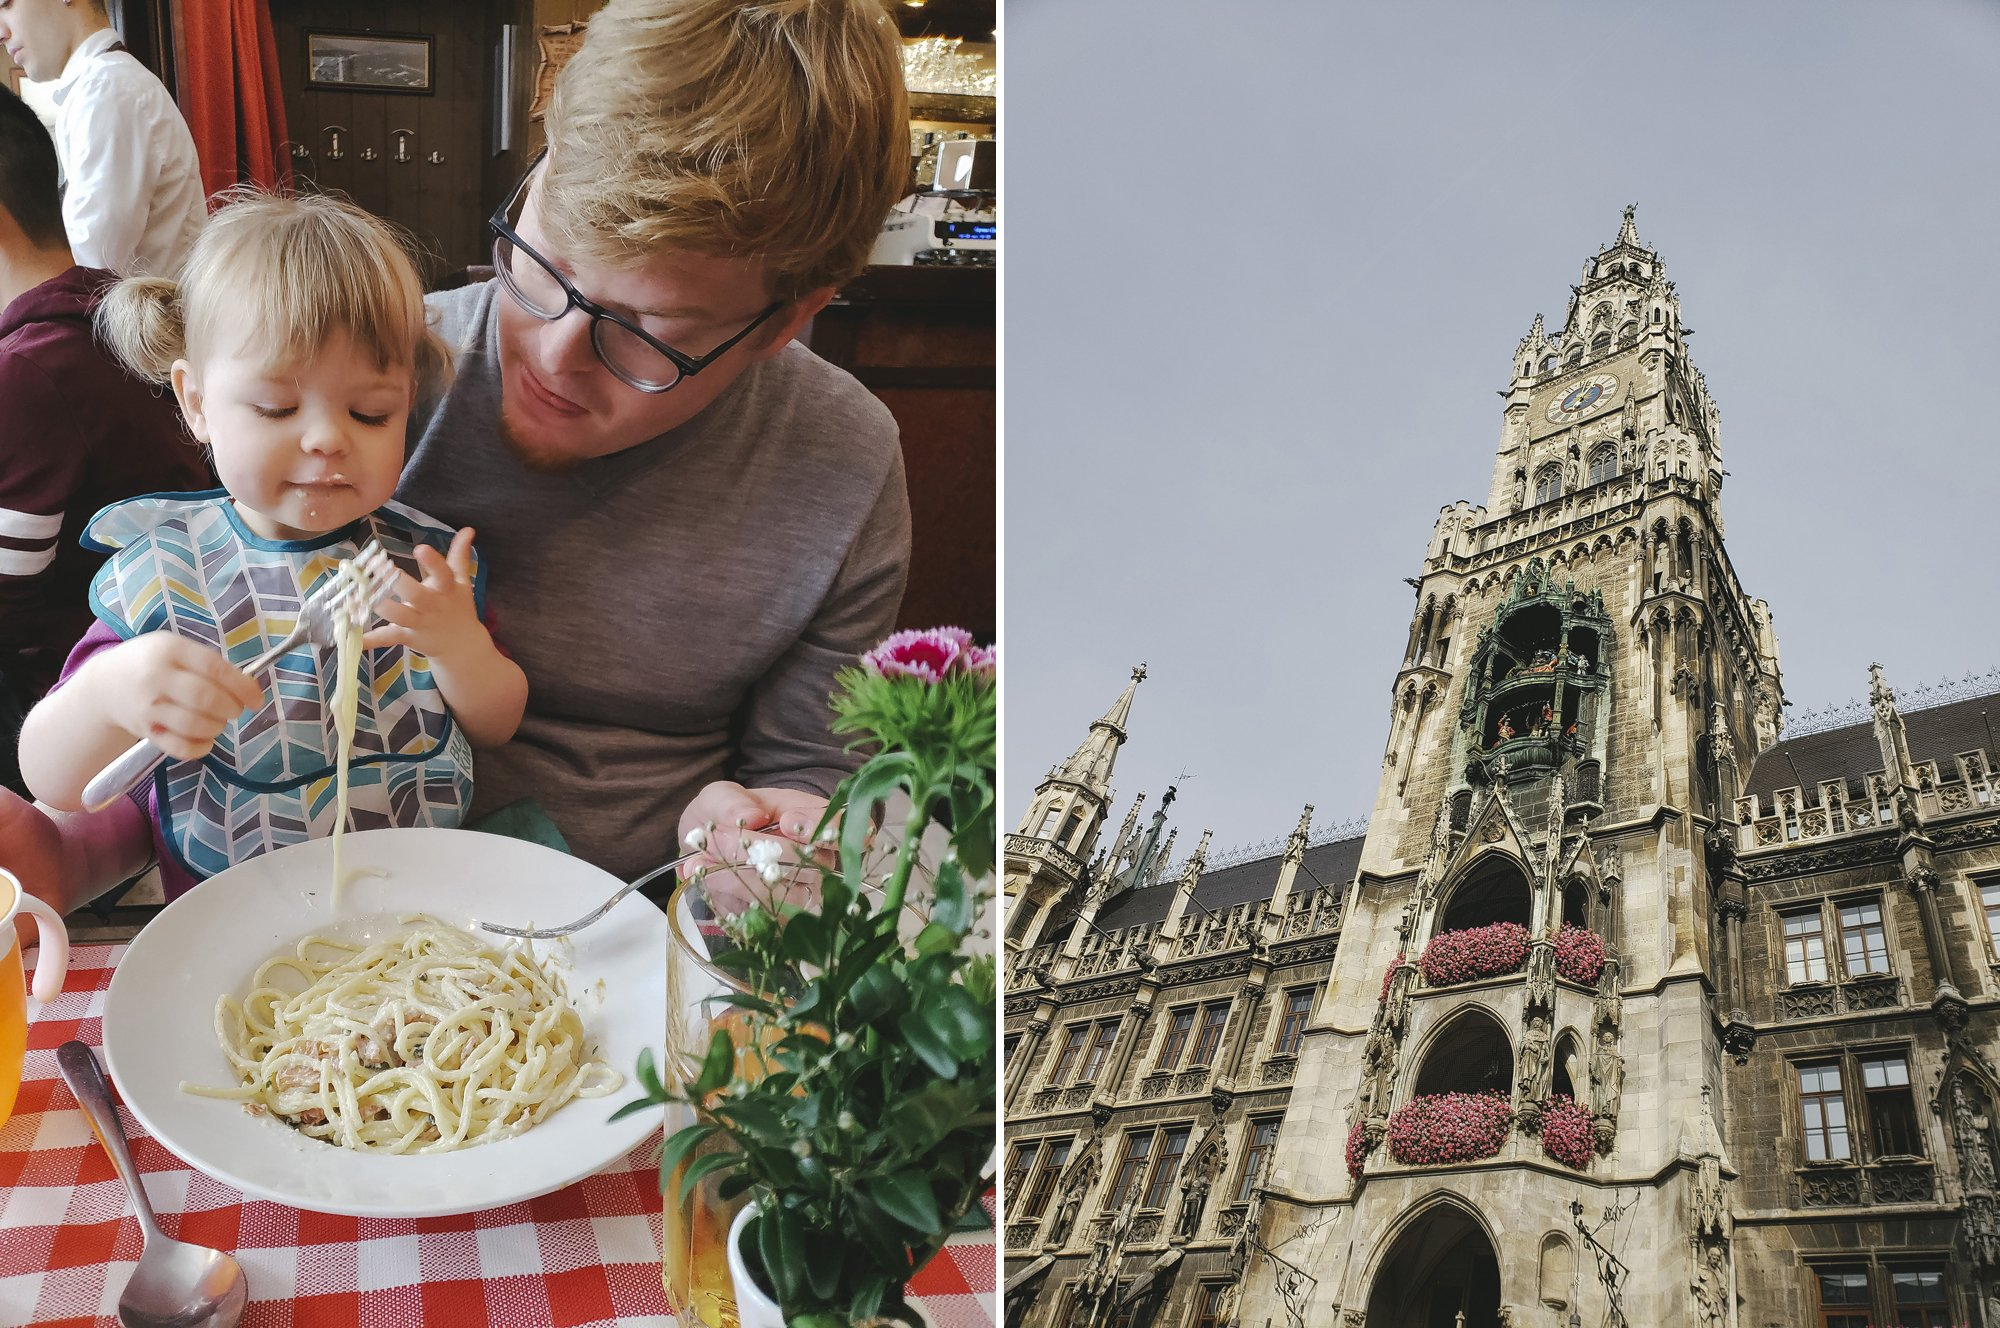 Eating with a toddler in Munich